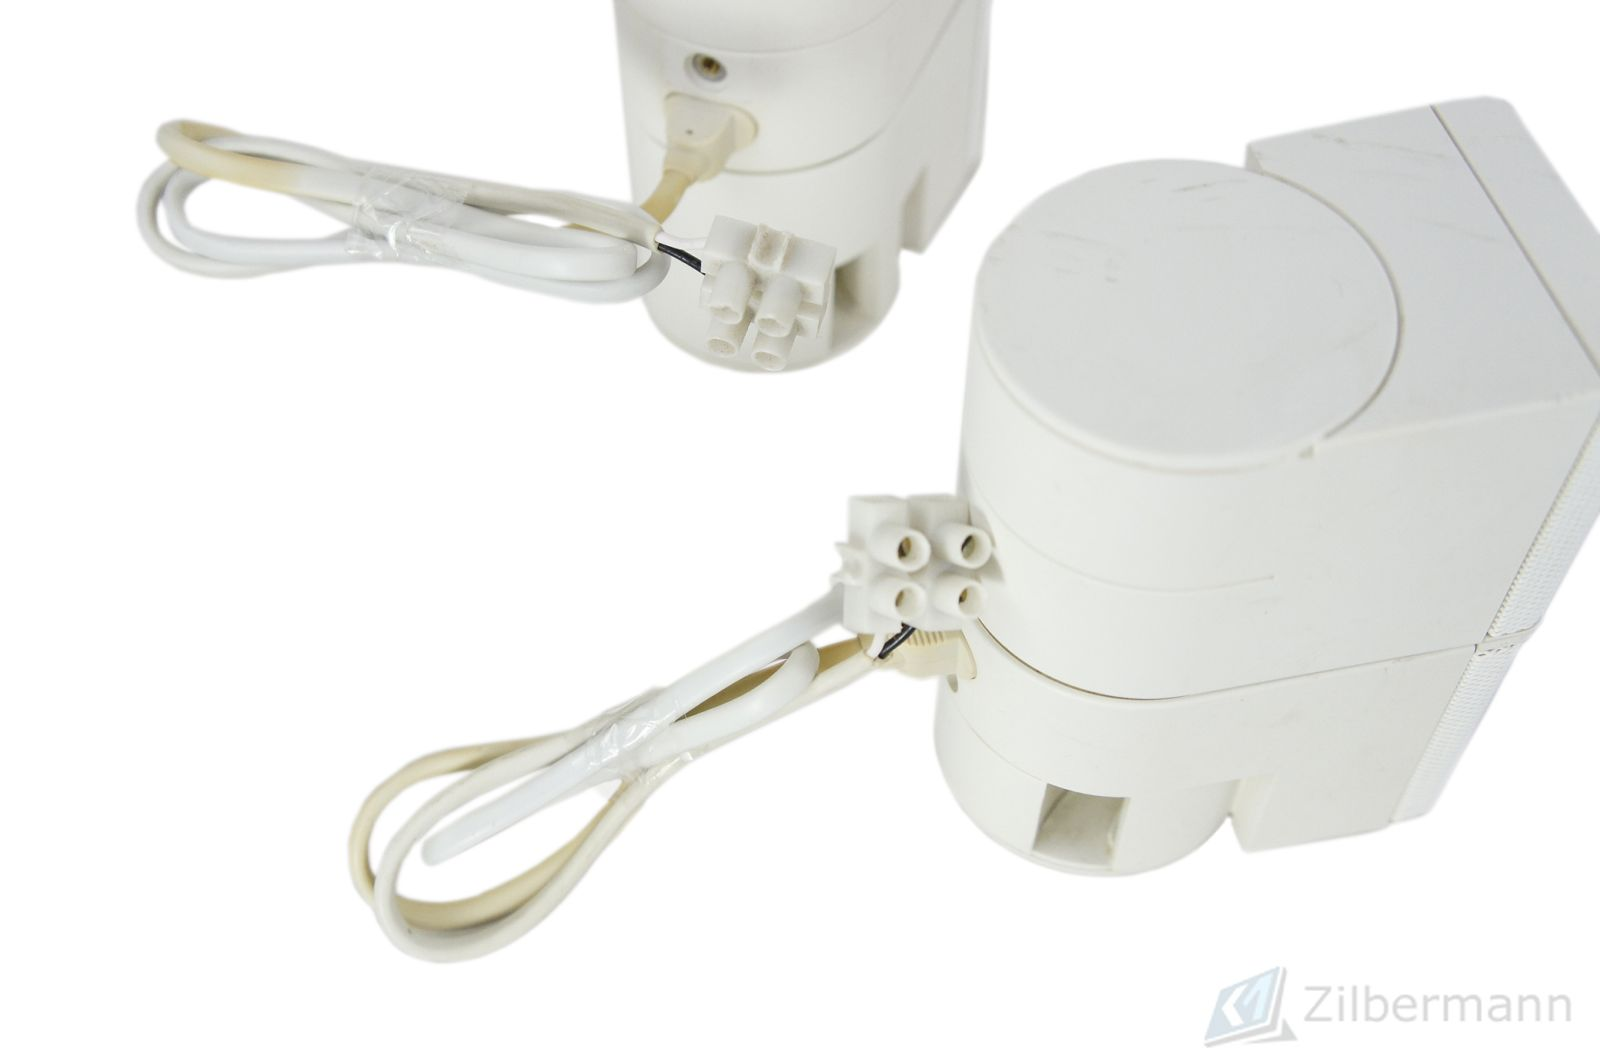 2x_Bose_Jewel_Cubes_Boxen_Satelliten_mit_Adapter_Weiss